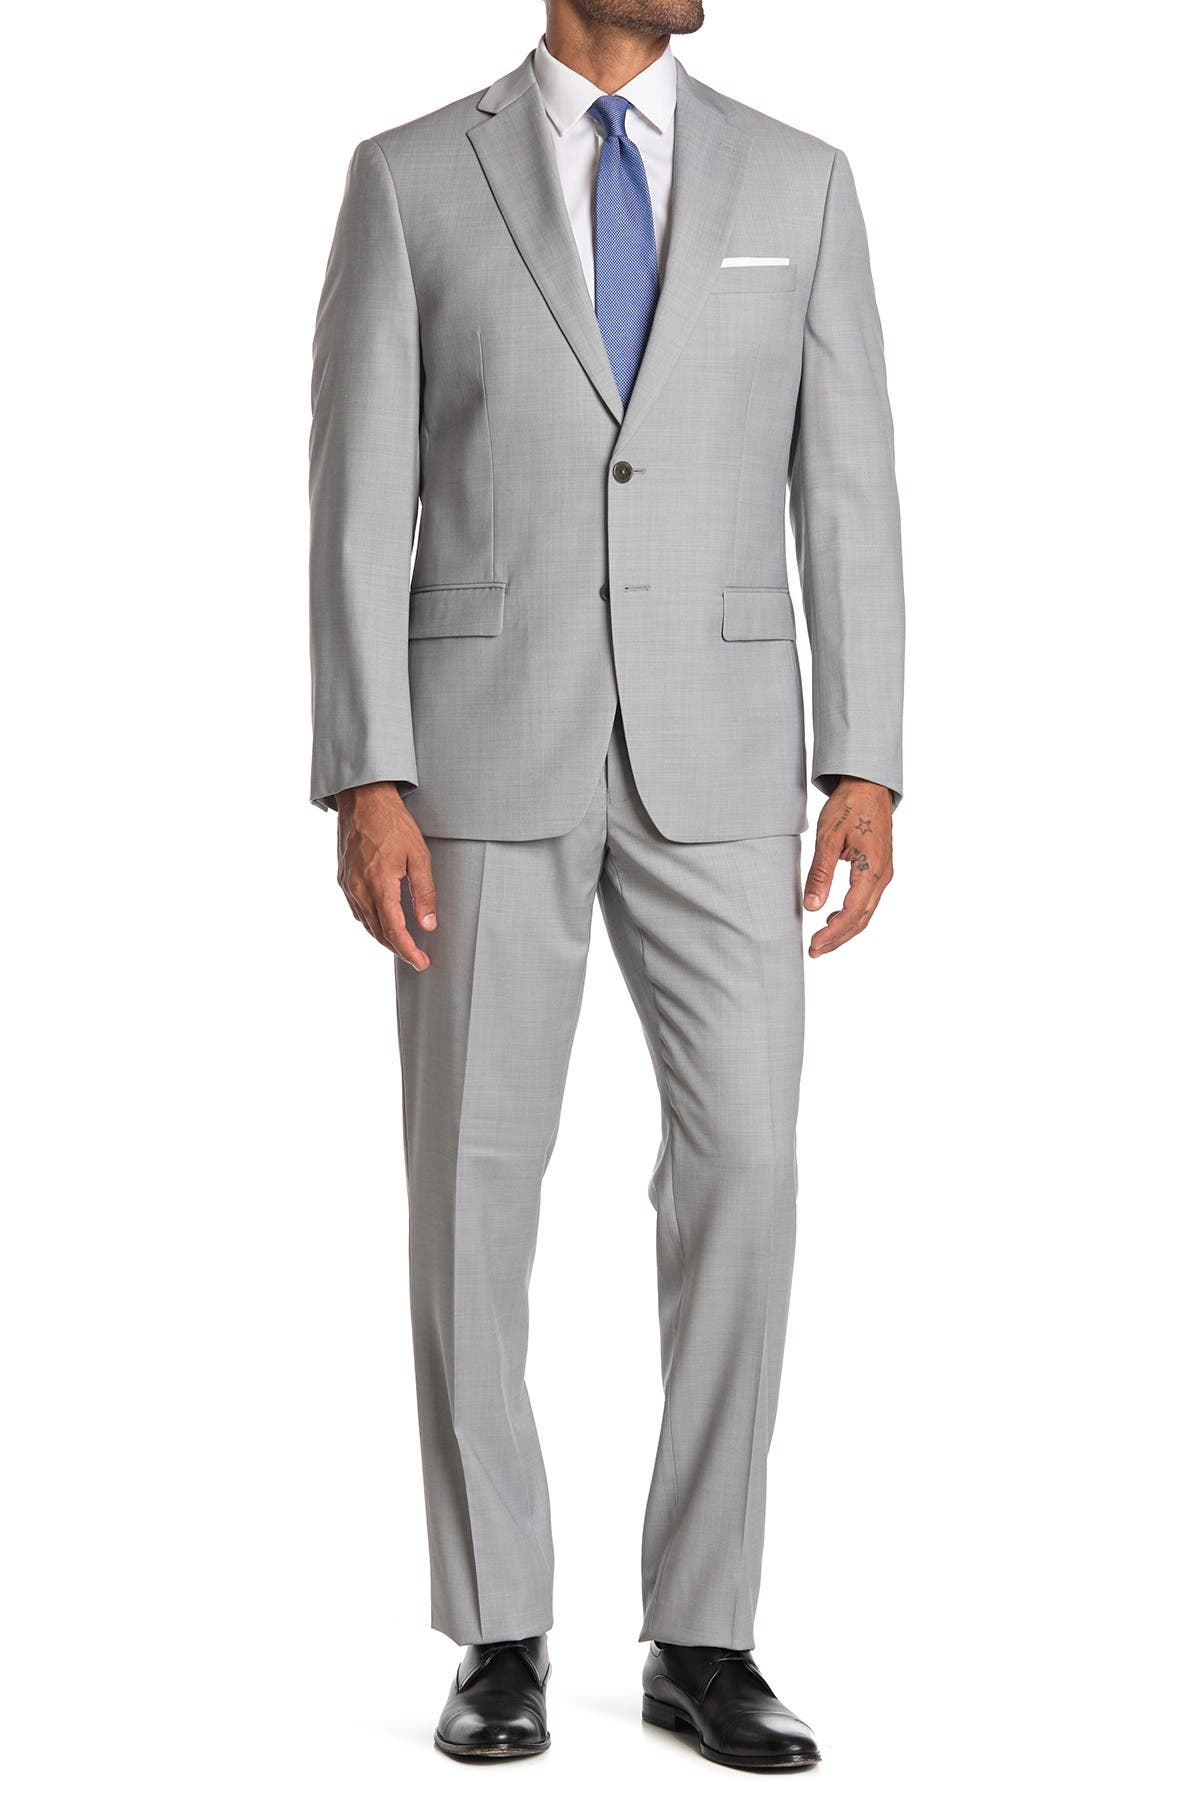 Image of Calvin Klein Light Grey Shark Skin Wool Two Button Notch Lapel Suit